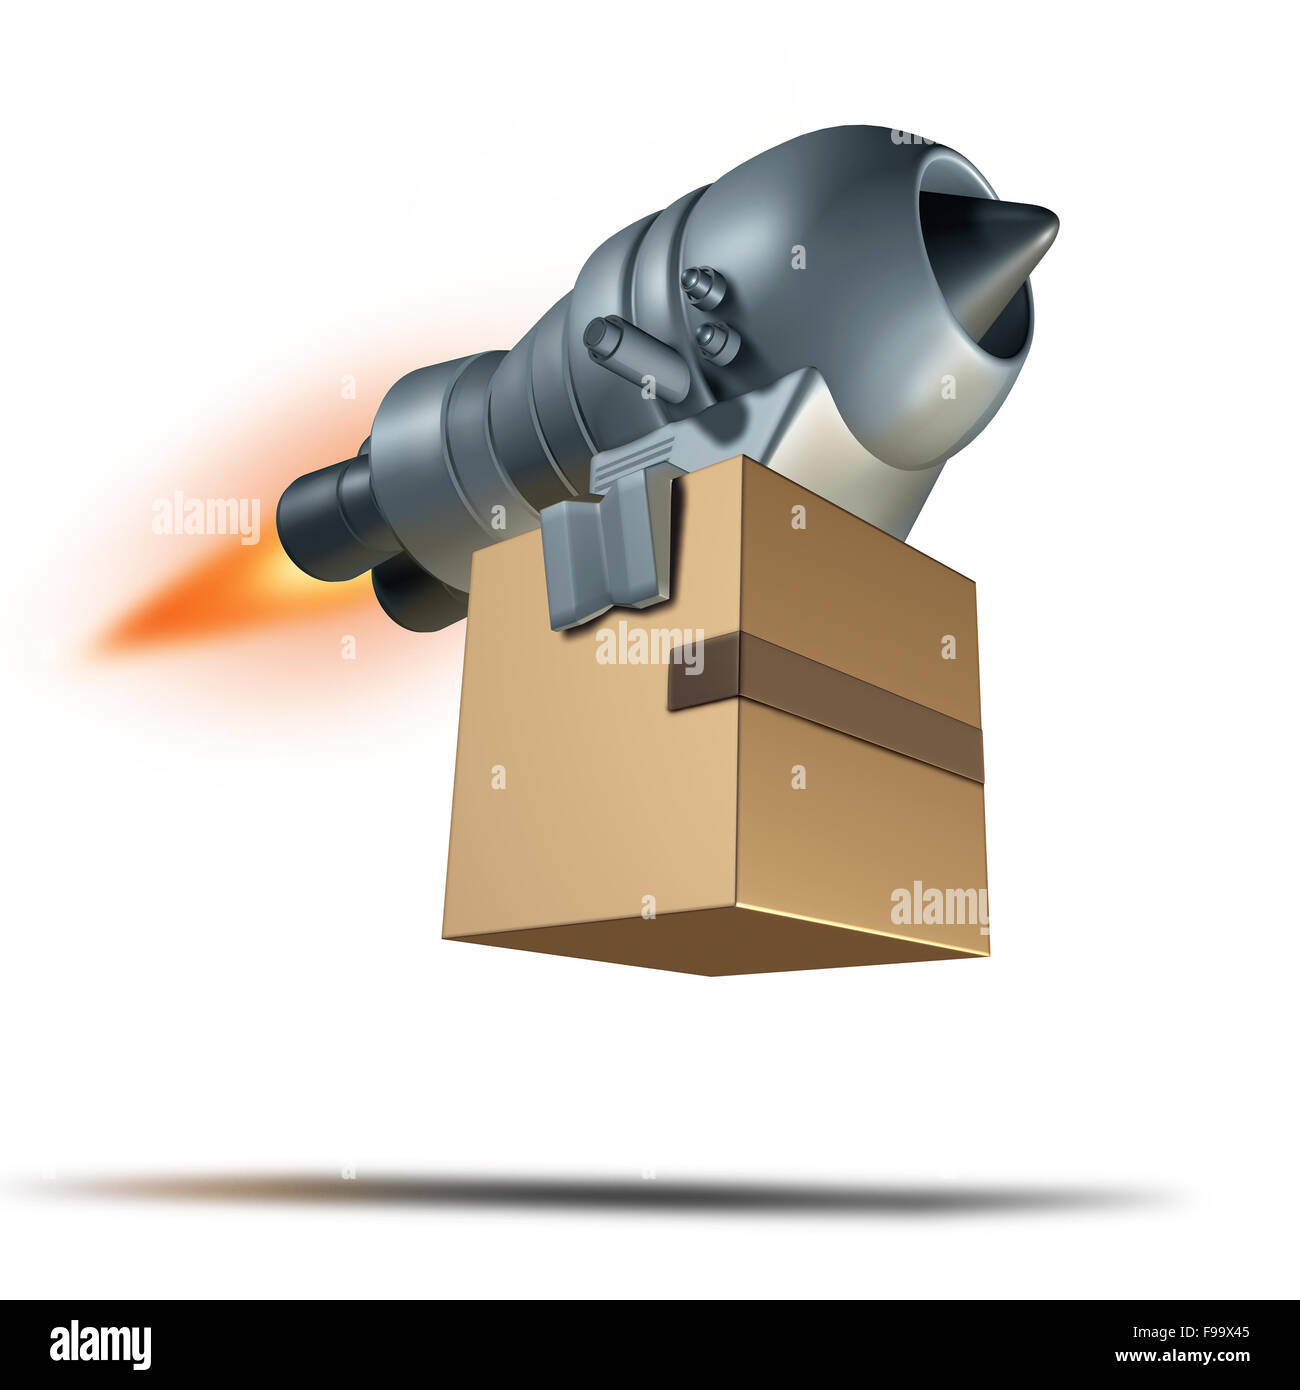 Express delivery service symbol and freight transport concept for fast courier shipping as a rocket engine blasting - Stock Image